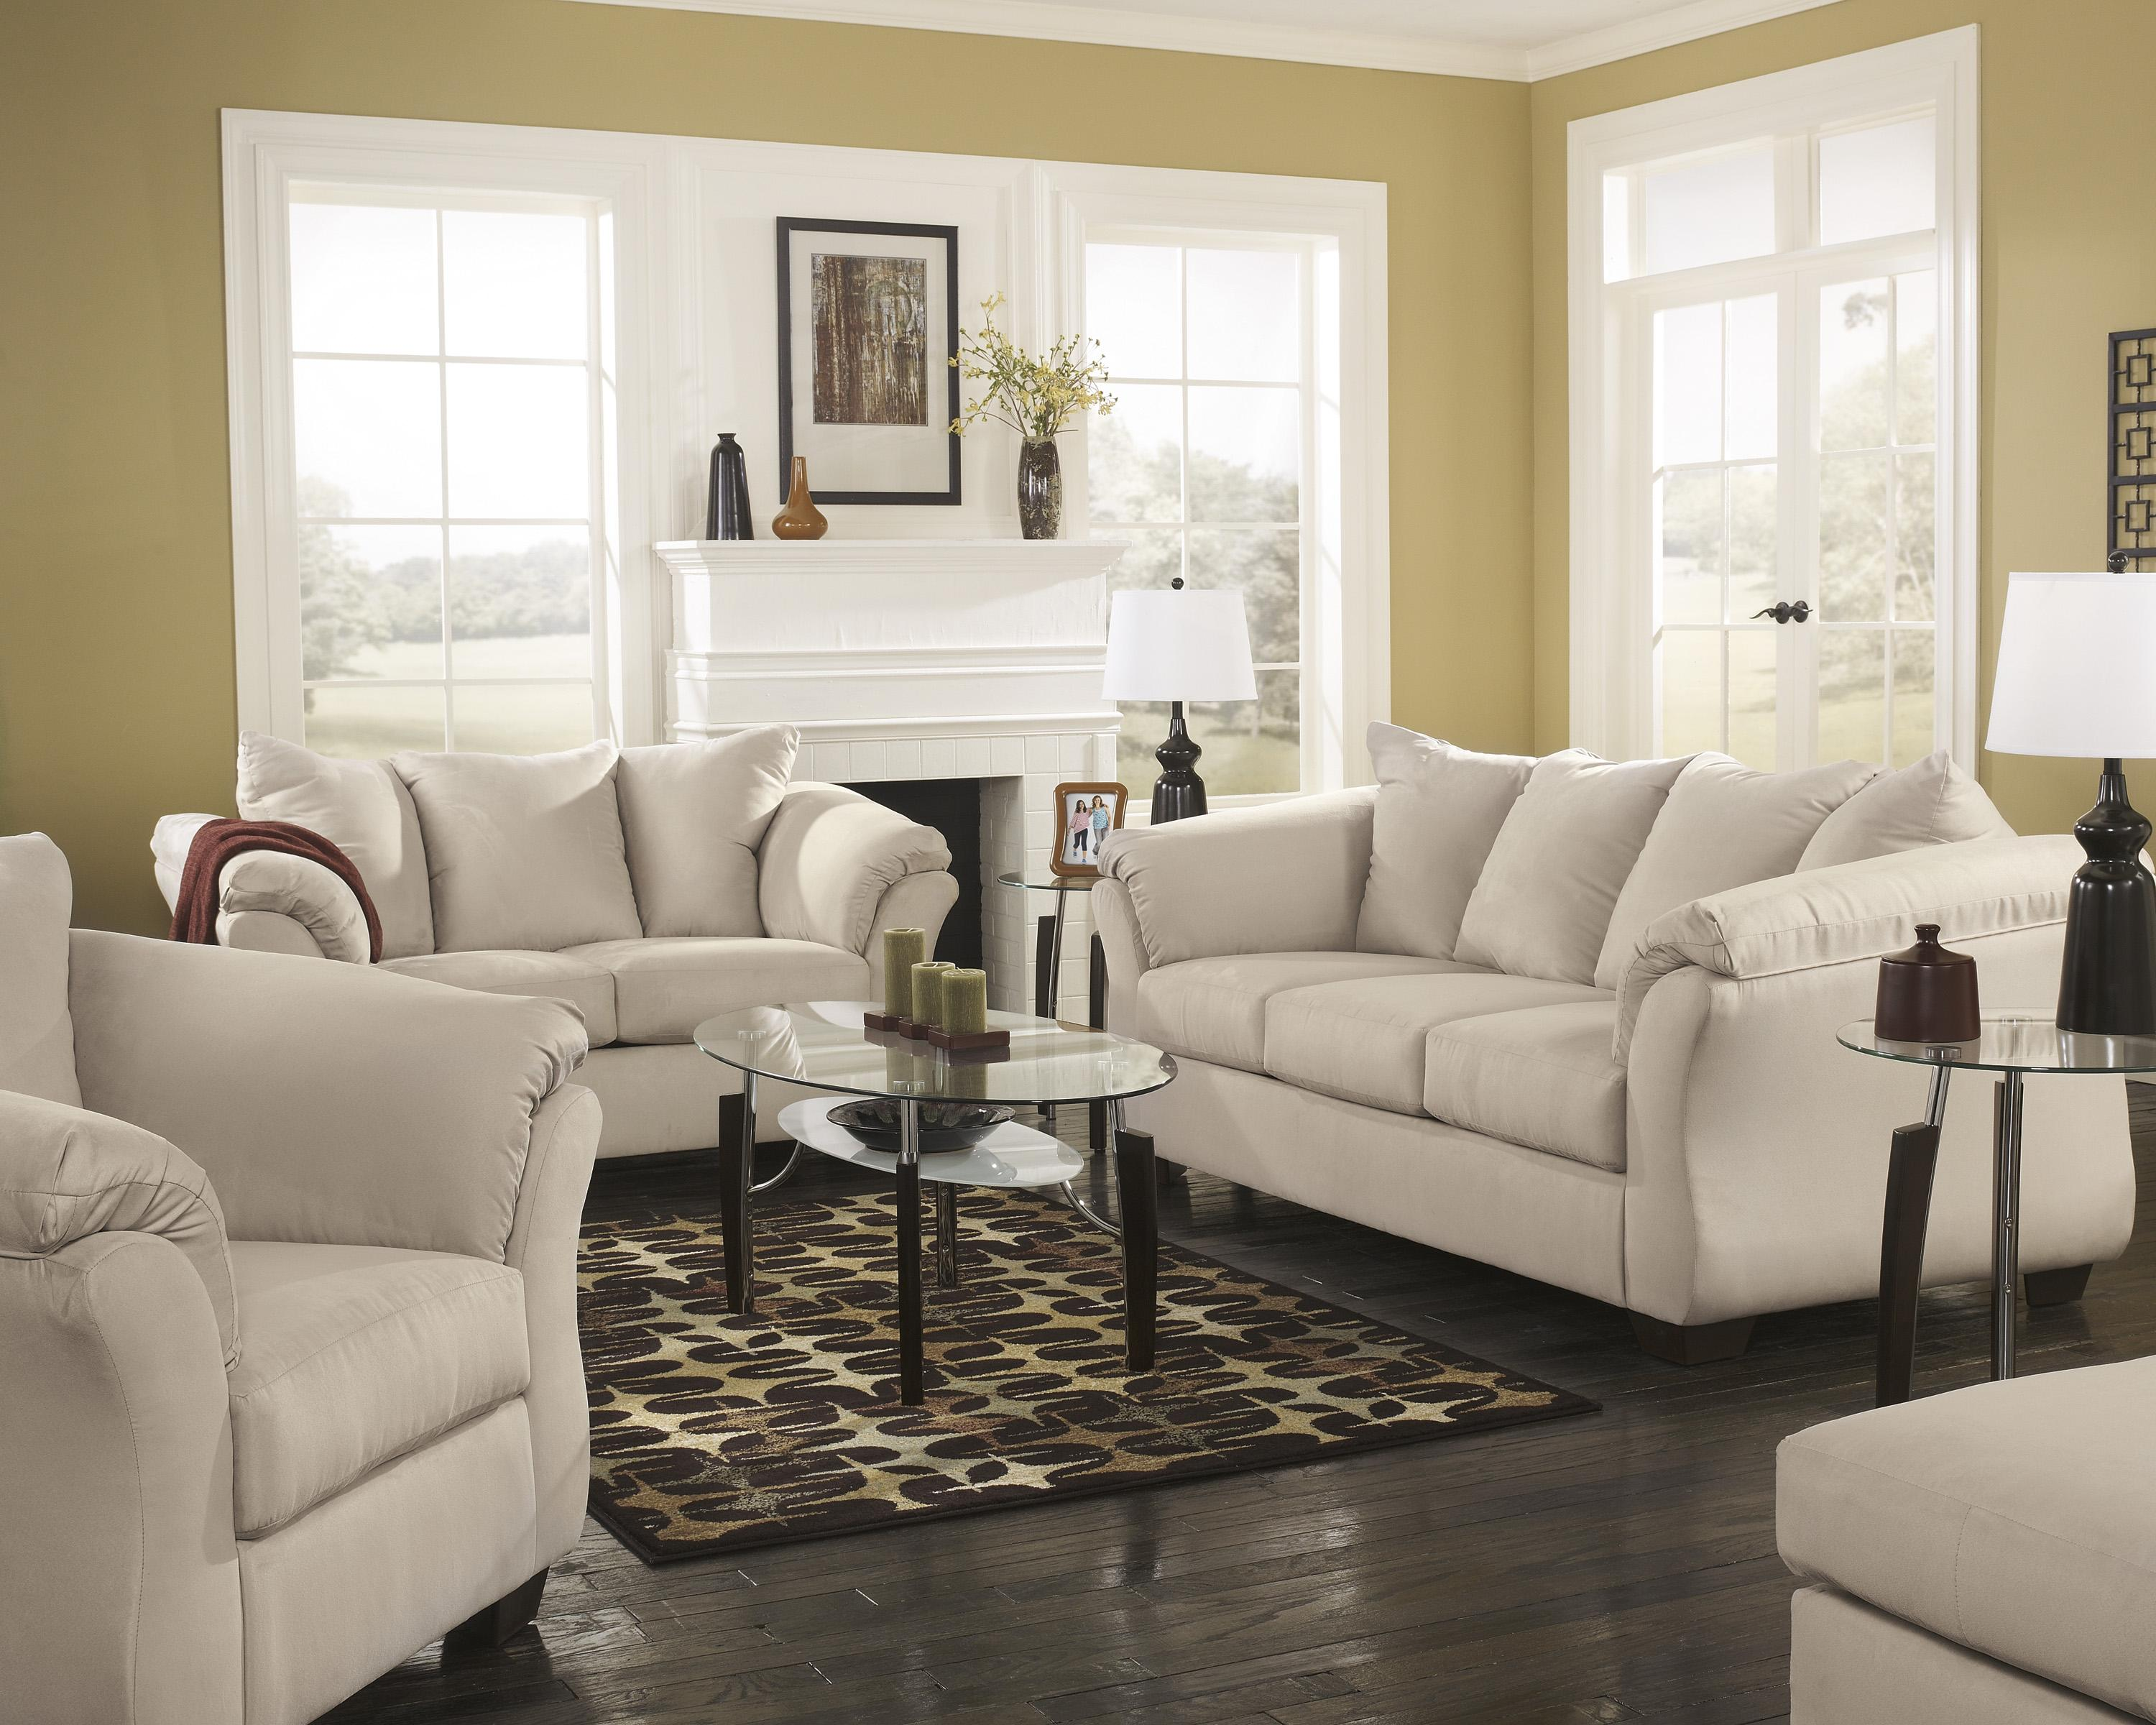 Signature Design by Ashley Darcy - Stone Stationary Living Room Group - Item Number: 75000 Living Room Group 2